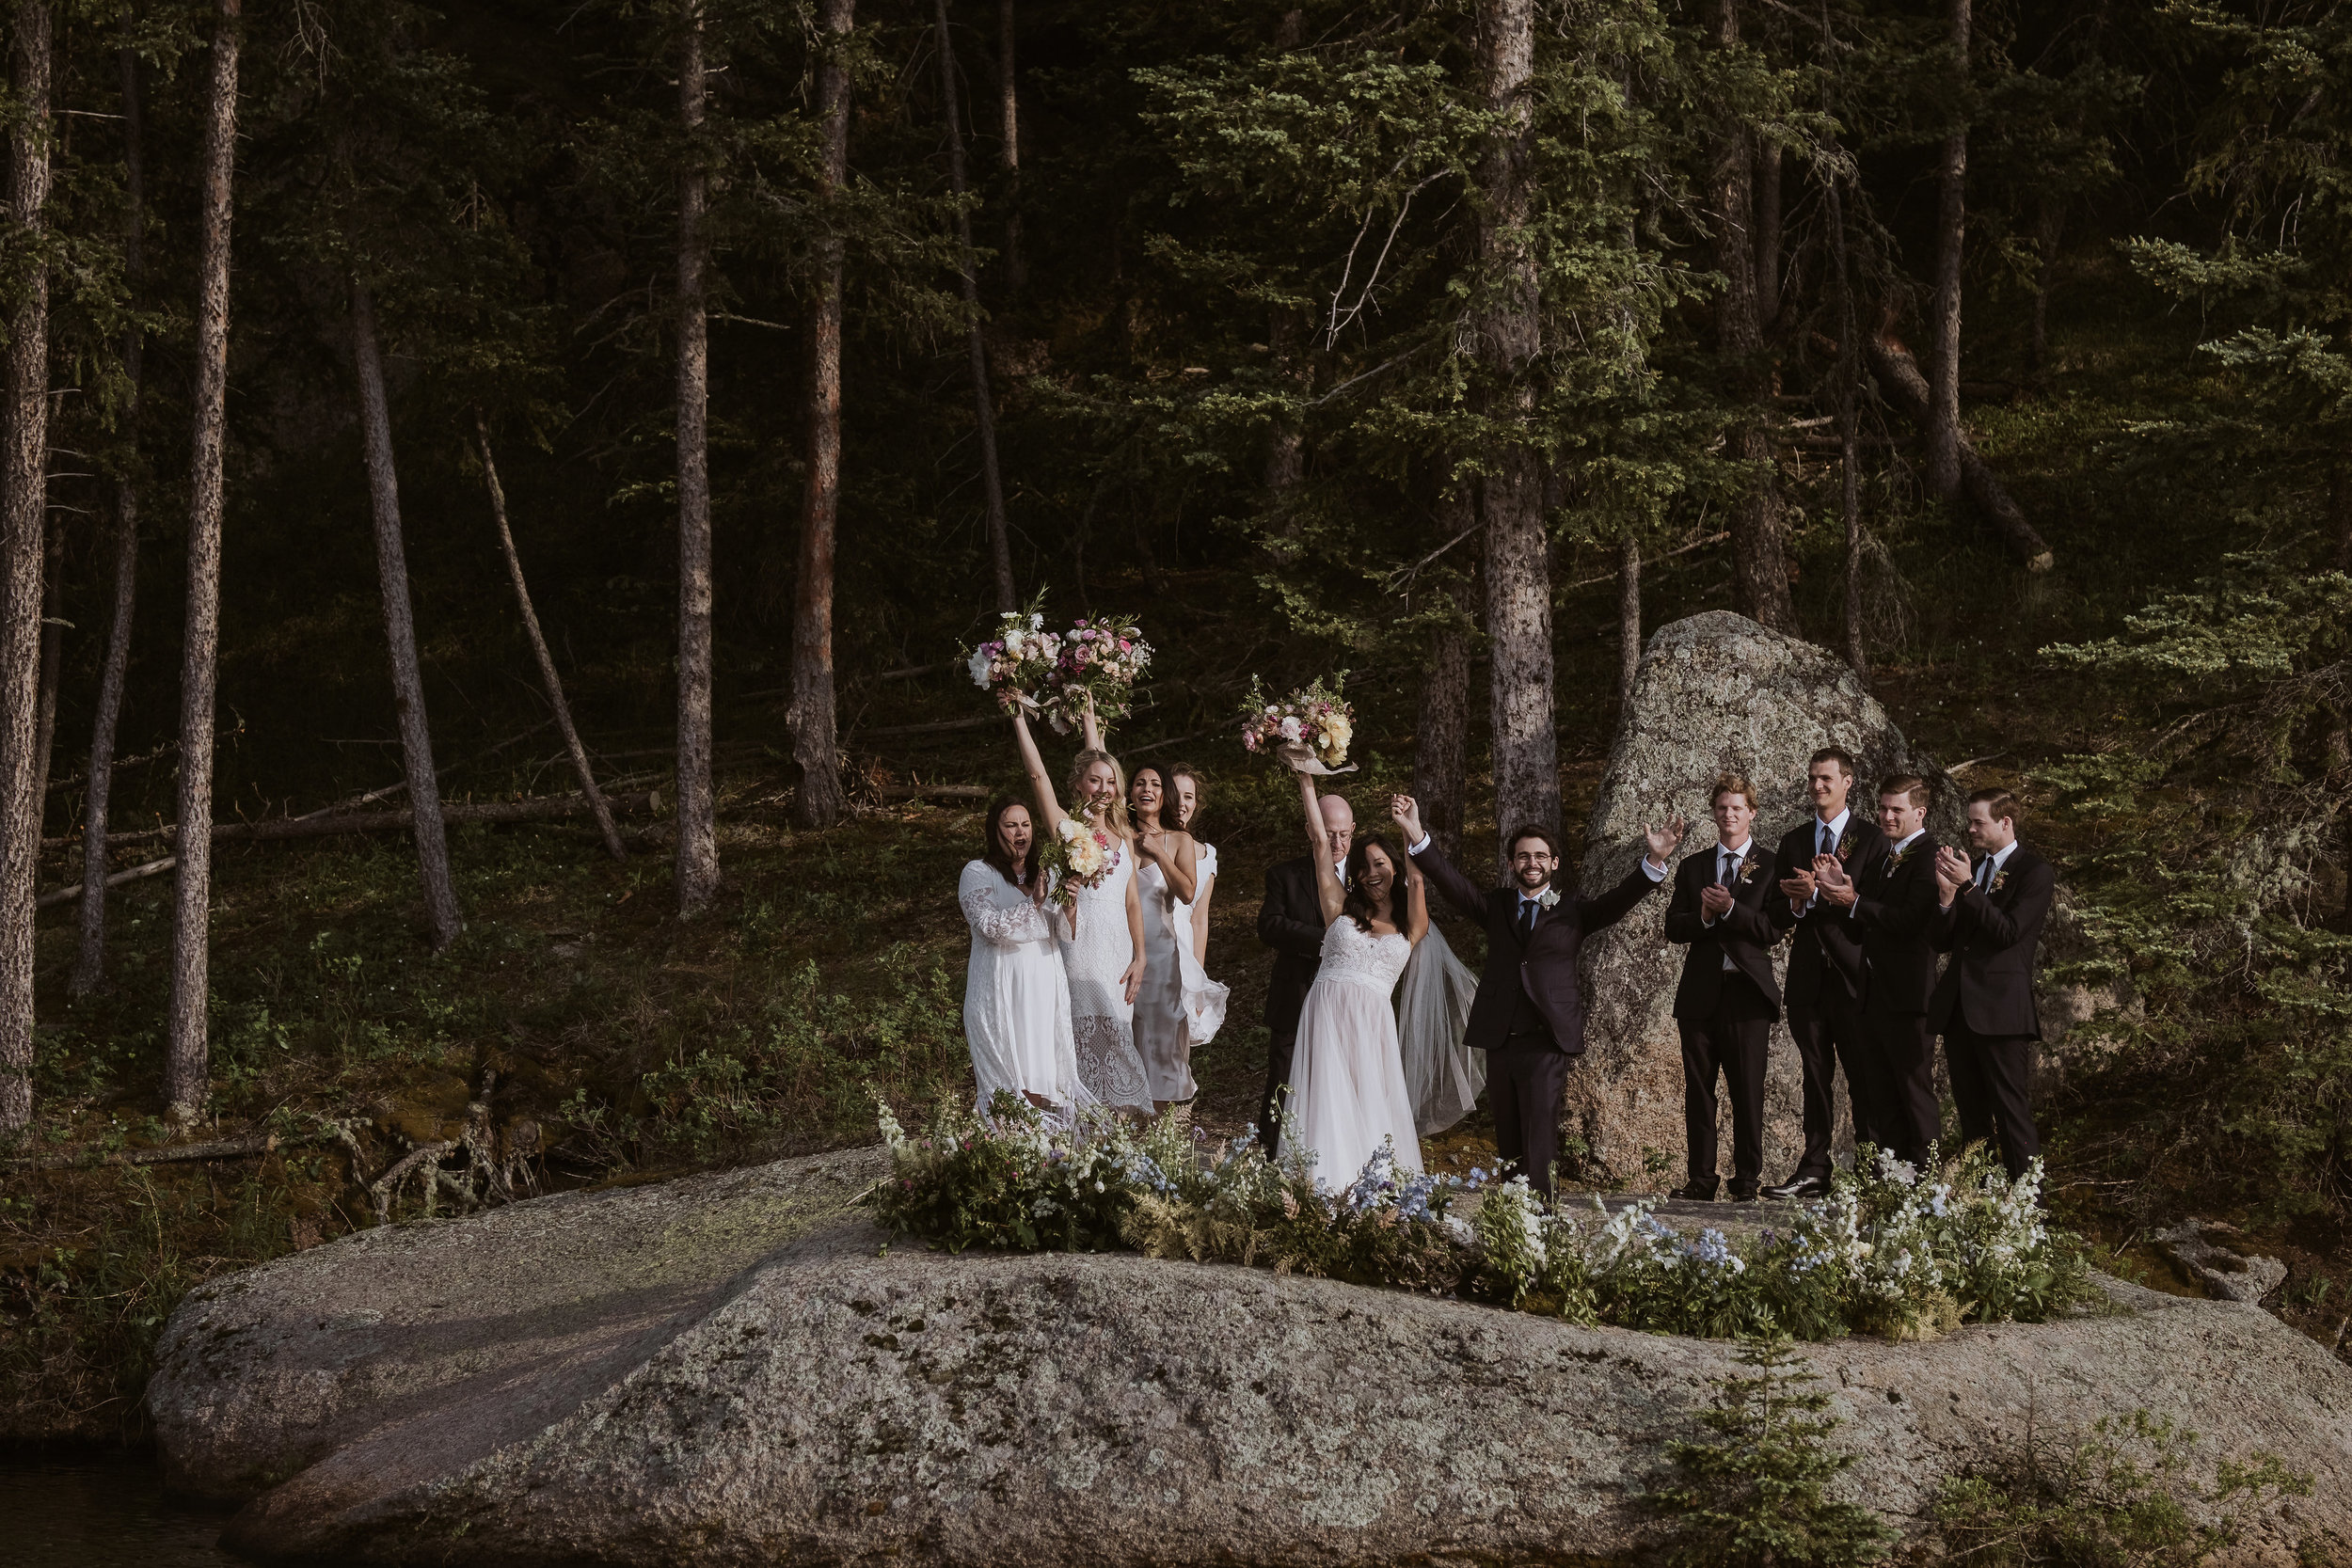 A nest of wildflowers, foliage, and grasses surrounds the bridal party.